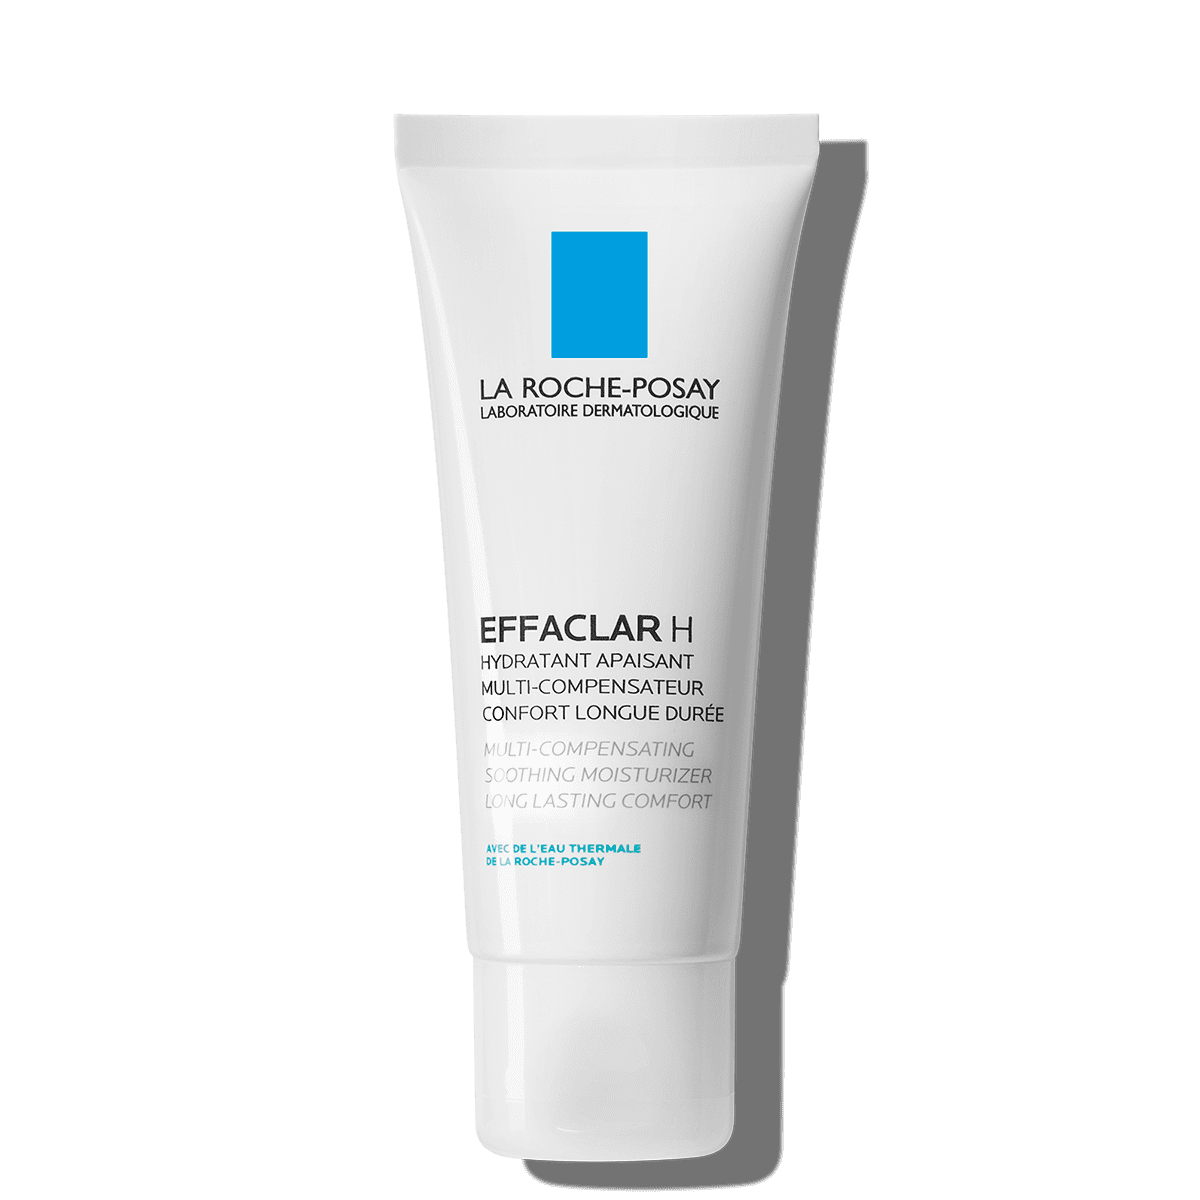 La Roche Posay Face Care Effaclar H Soothing Moisturizer 40ml 33378724